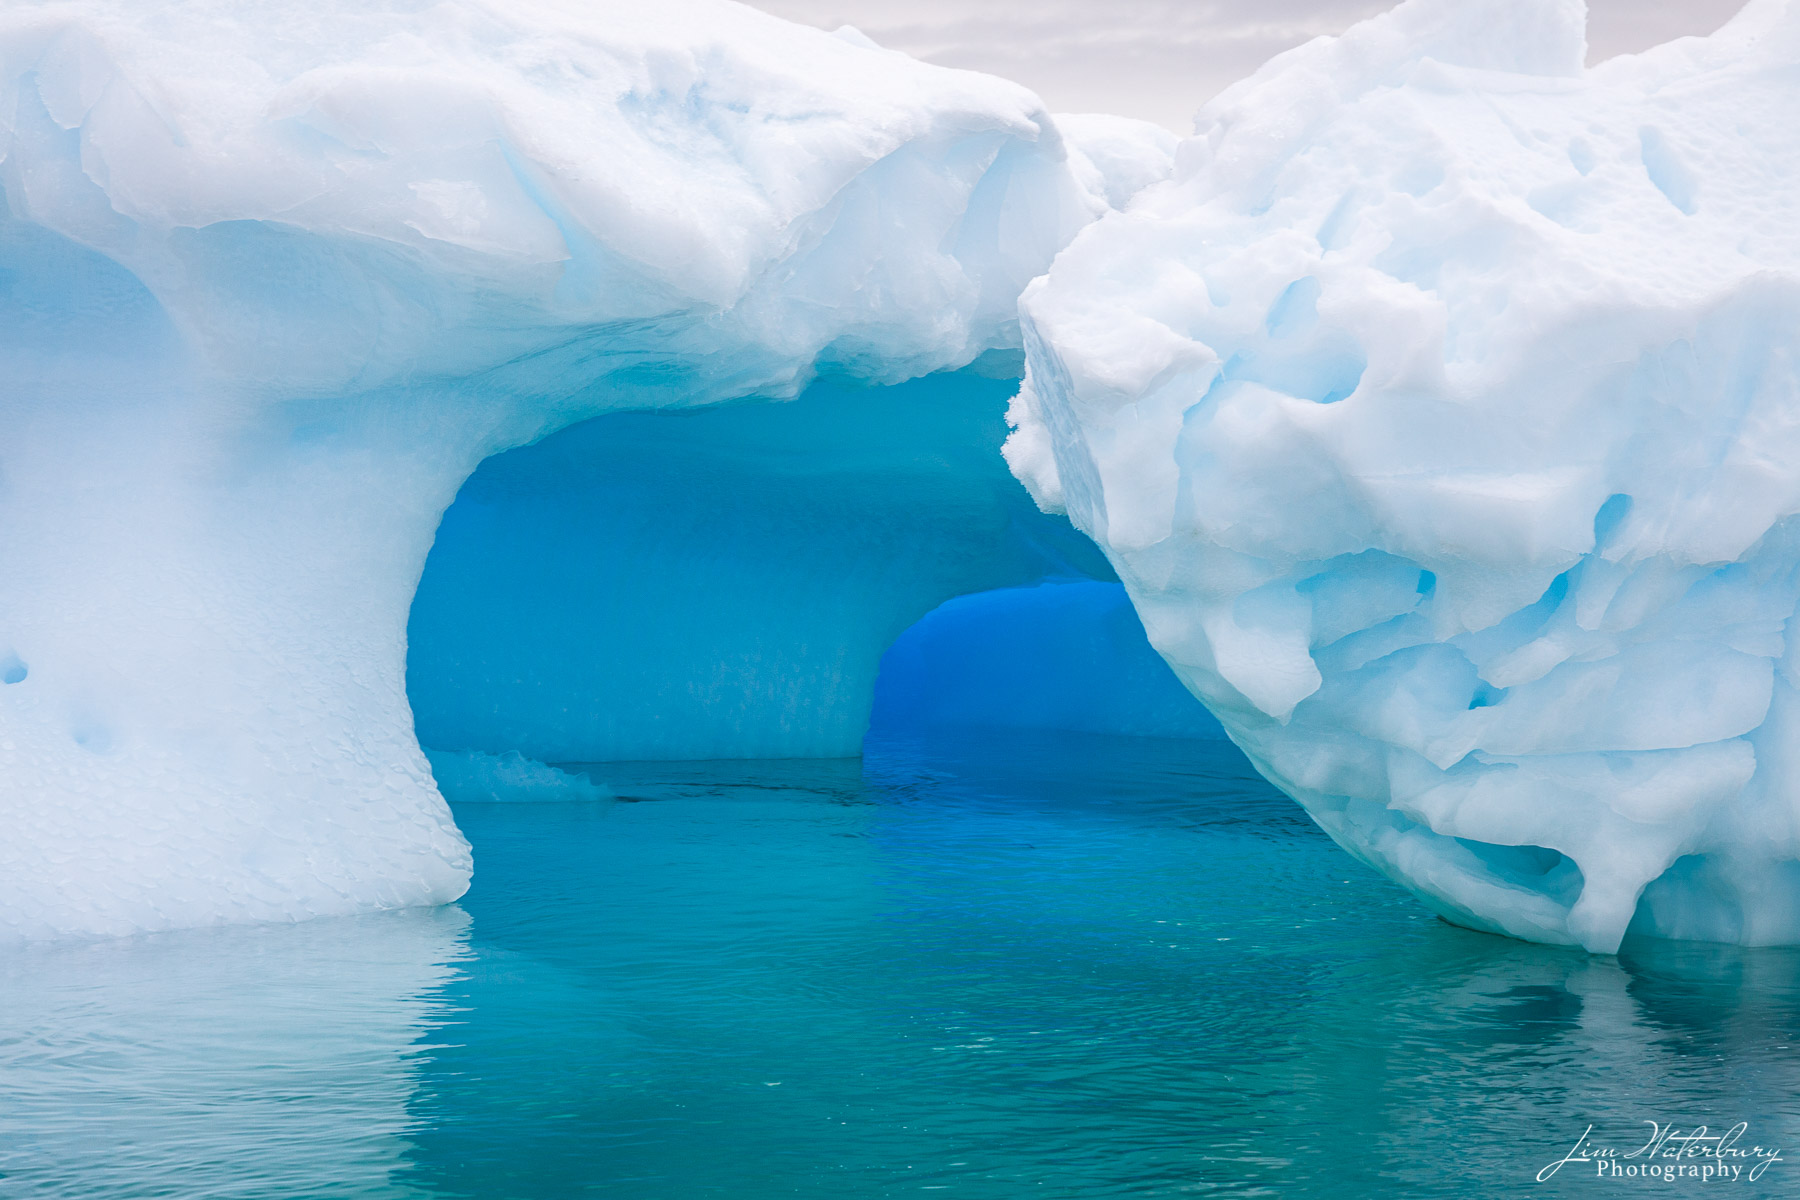 A tunnel, formed on the bottom of an iceberg floating in the Lemaire Channel, shows striking shades of aqua and blue -- in the...